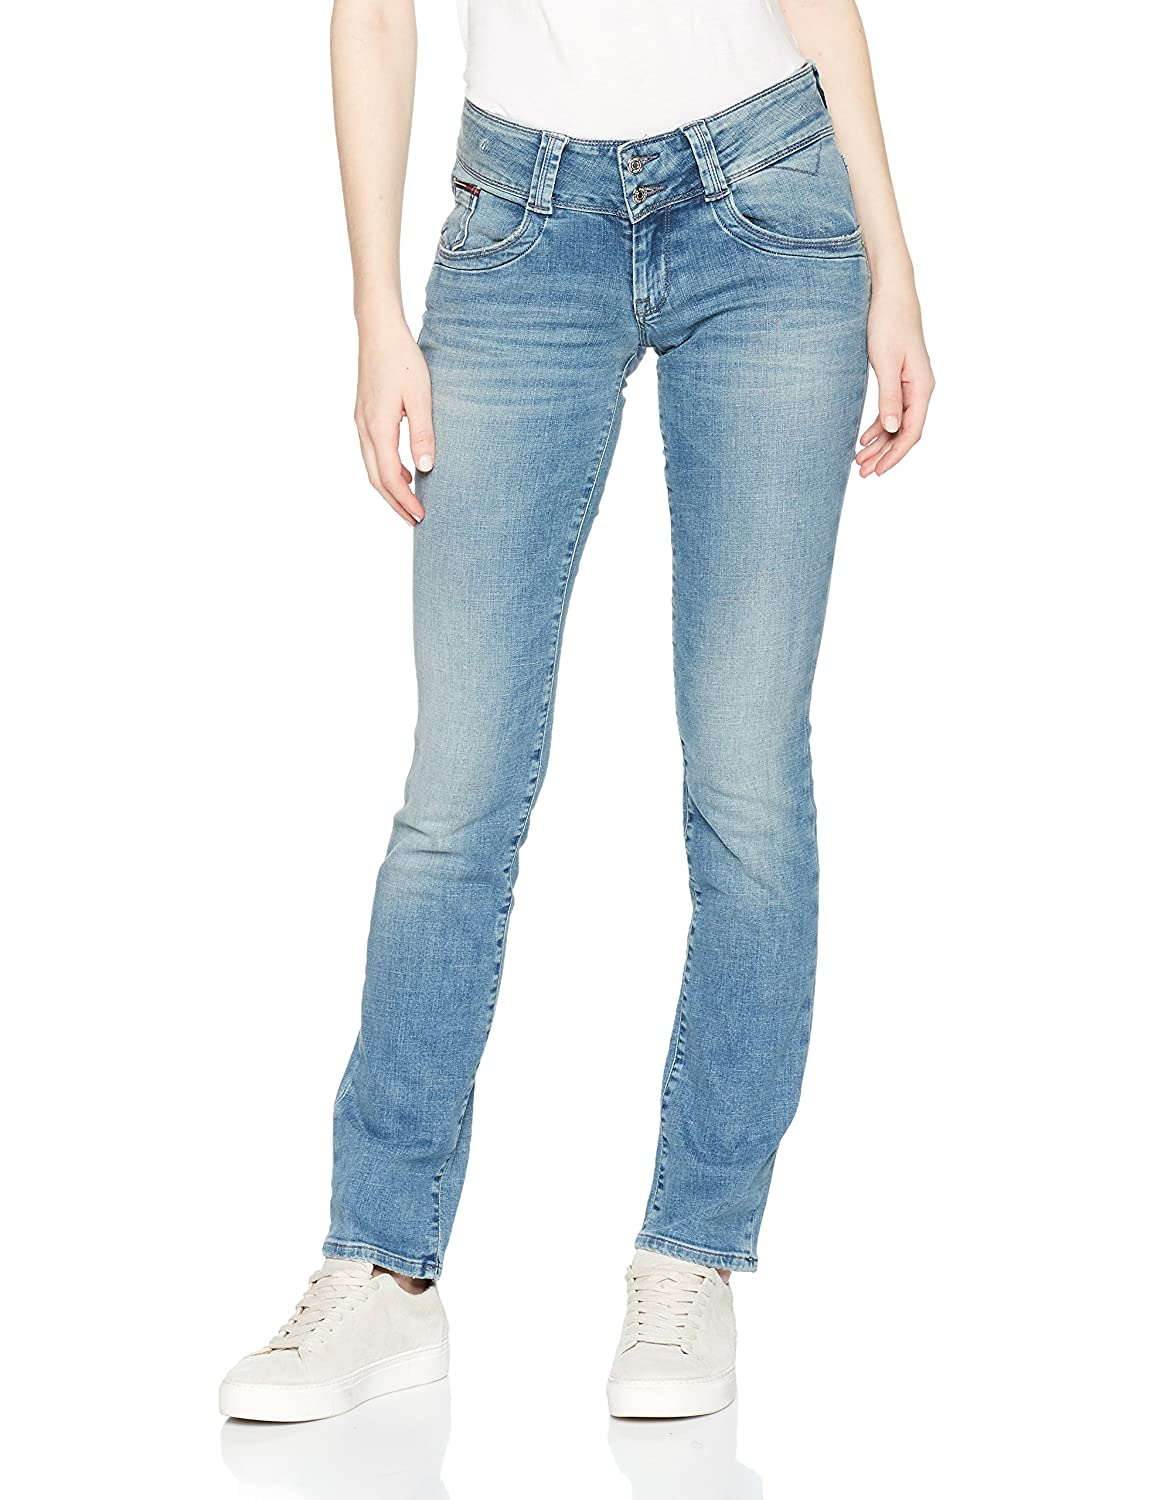 TALLA 31W / 32L. Tommy Jeans Mujer Low Rise  Viola jeans rectos  recta